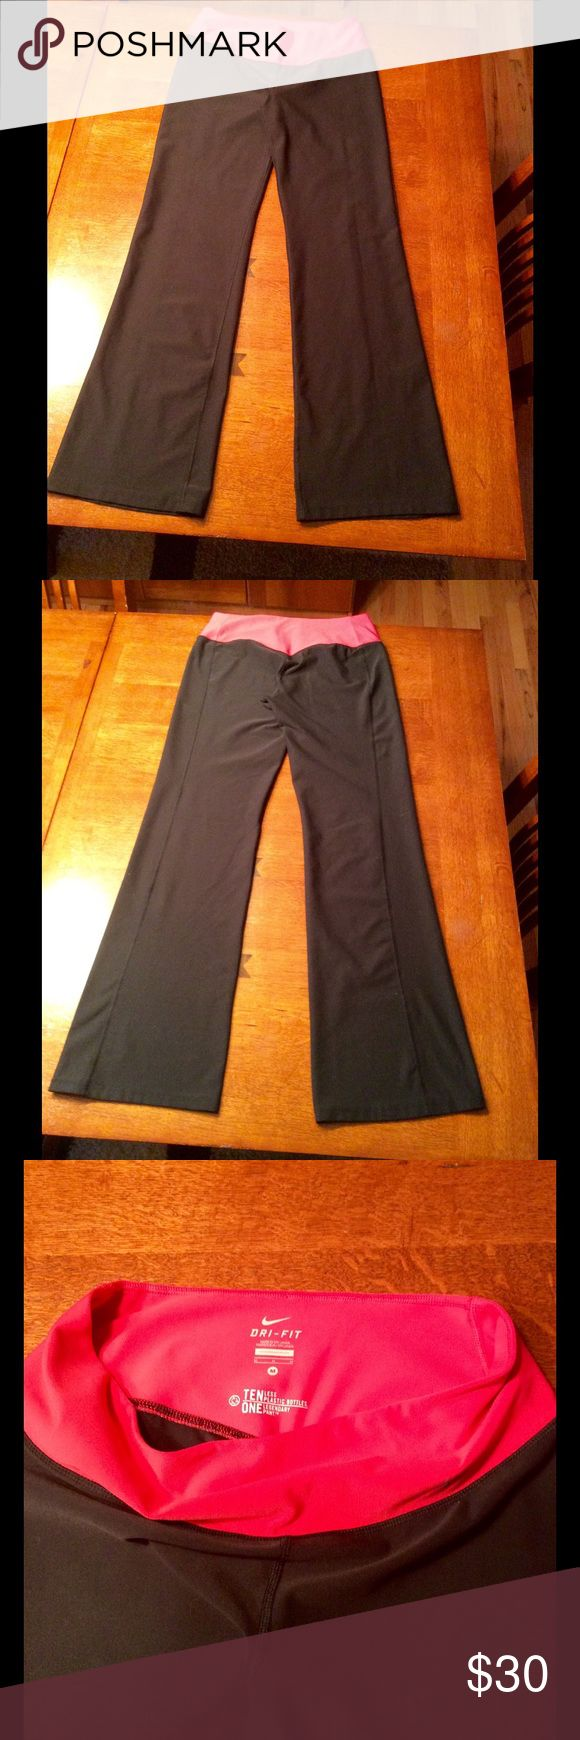 New listing 💕 Nike legend classic training pant Women's legendary classic training pant in size medium.  Slim leg, wide leg opening. Polyester/spandex blend.  Pink waistband and black pant. Hidden slit pocket inside front waistband.  Waitst measures 14 1/2 in flat across, hips 19 1/2 in and inseam is 32 in.  Leg opening flat along bottom is 9 1/2 in.  Pants have been gently worn but are in excellent contrition. Nike Pants